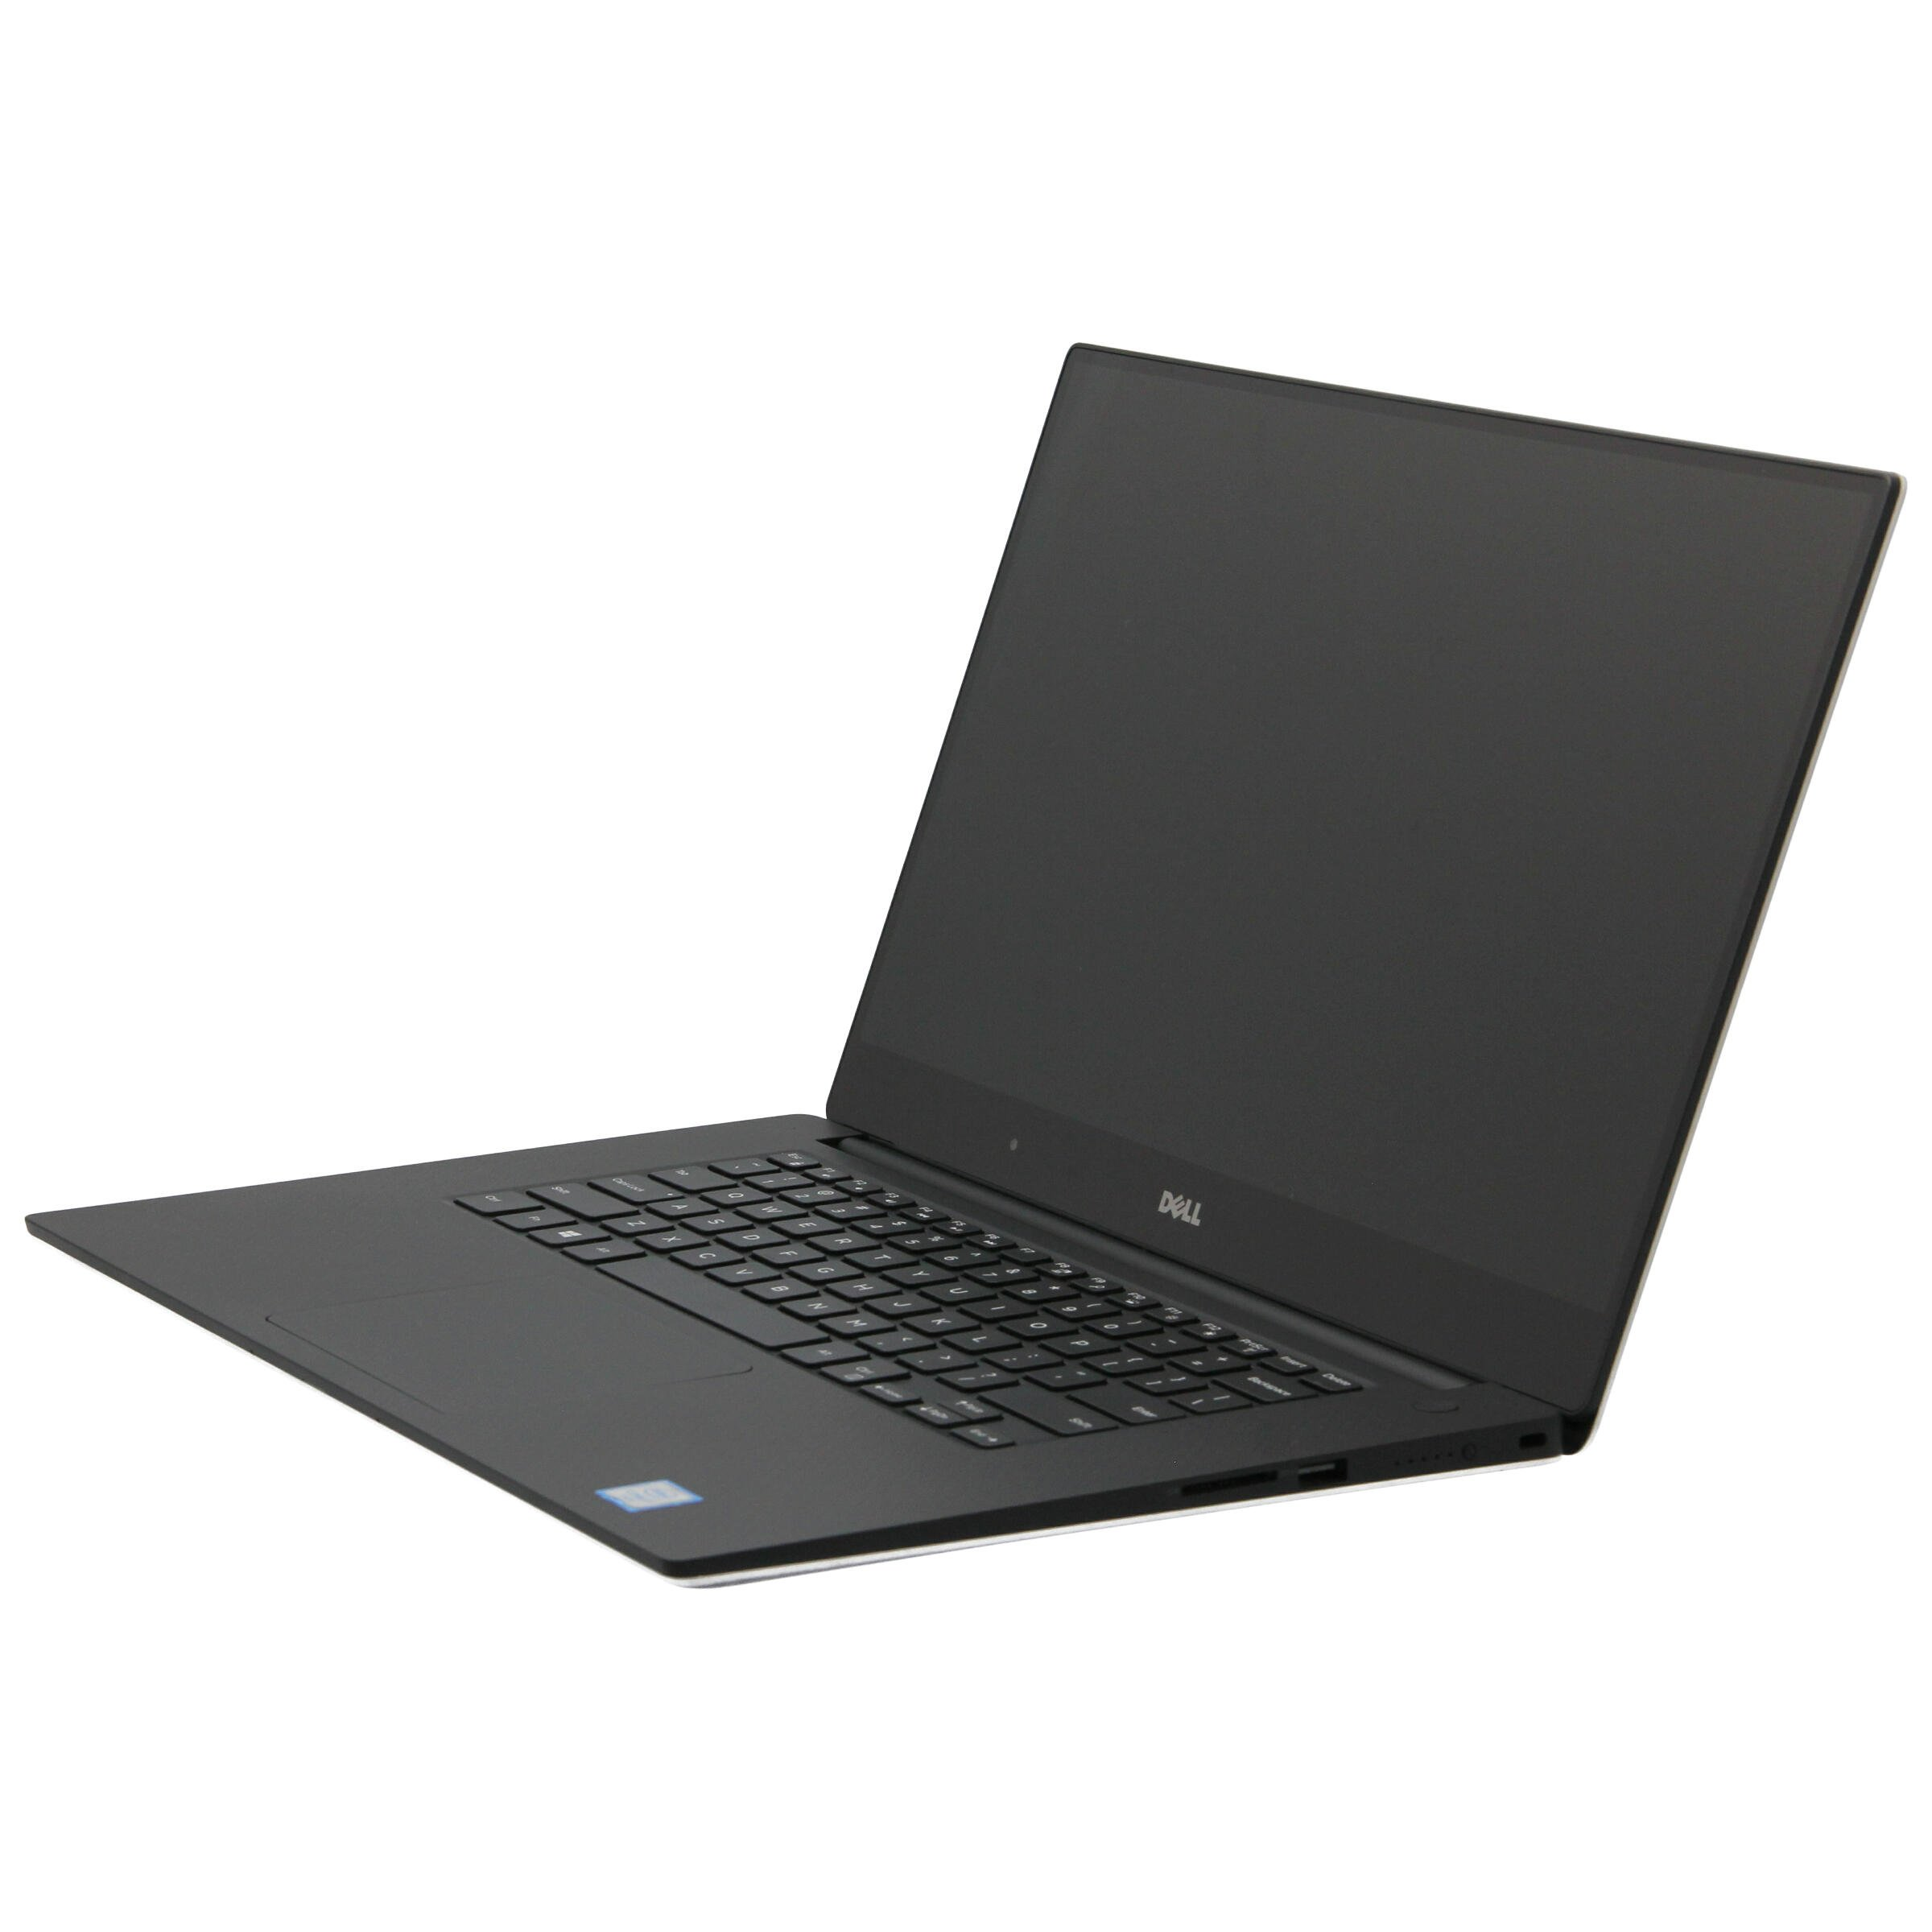 Dell Presicion 5510 Laptop do 3500